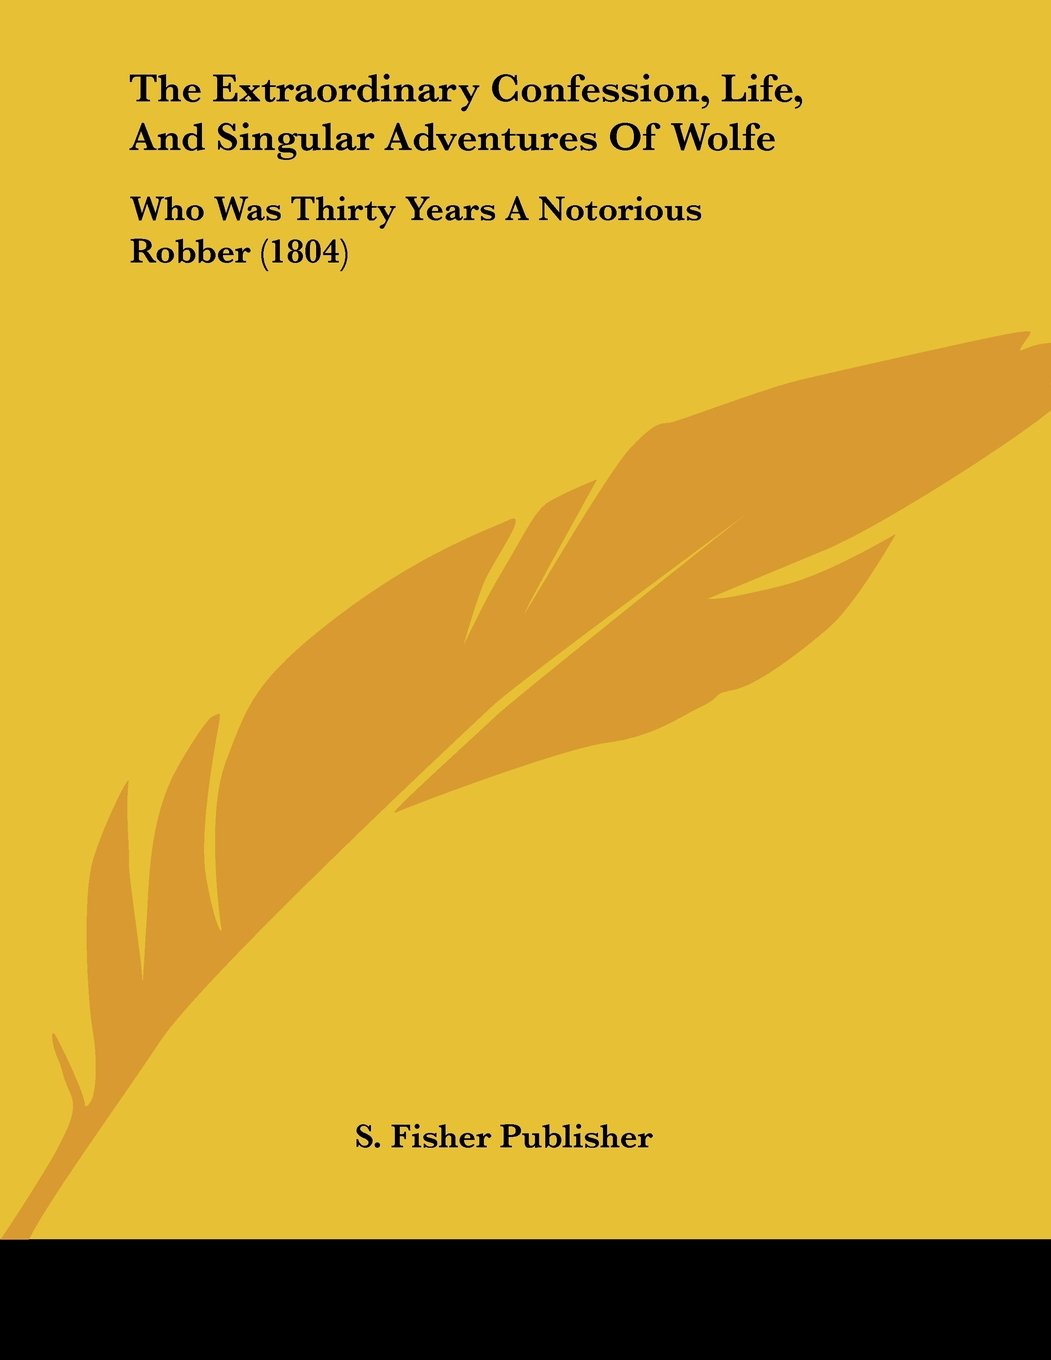 The Extraordinary Confession, Life, And Singular Adventures Of Wolfe: Who Was Thirty Years A Notorious Robber (1804) PDF